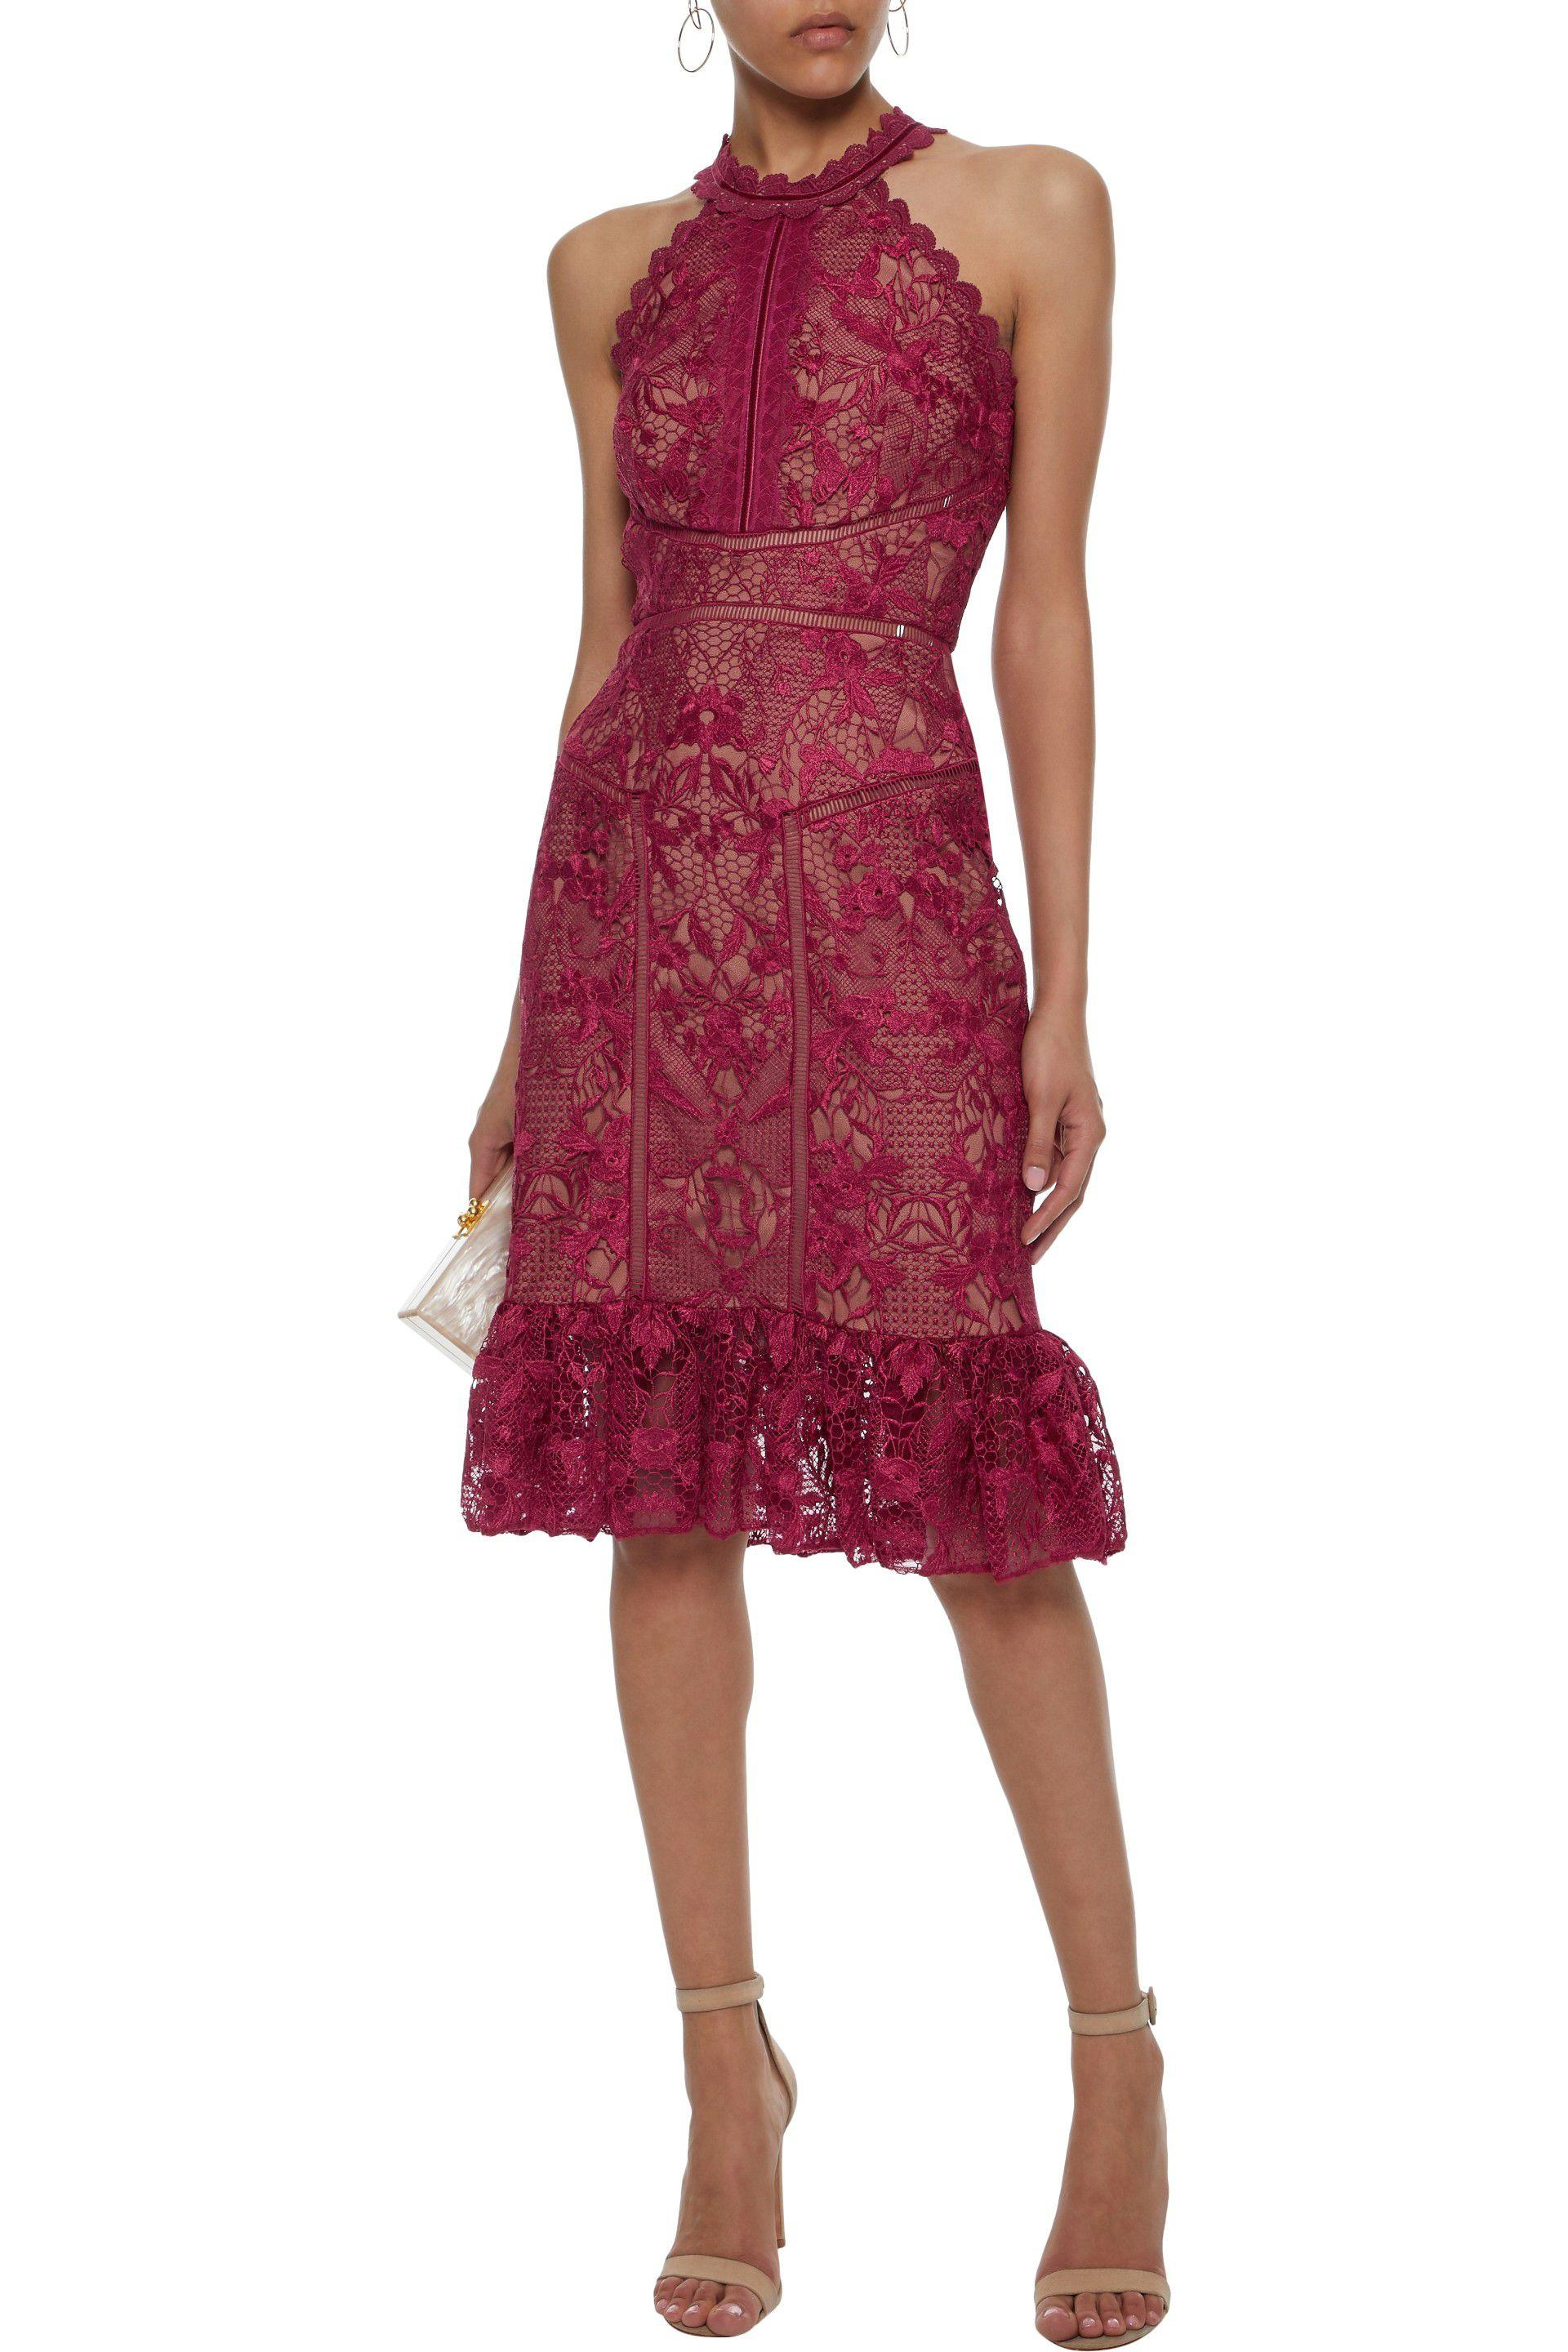 ad4afdd2 Marchesa notte - Red Woman Scalloped Velvet-trimmed Guipure Lace Dress  Burgundy - Lyst. View fullscreen